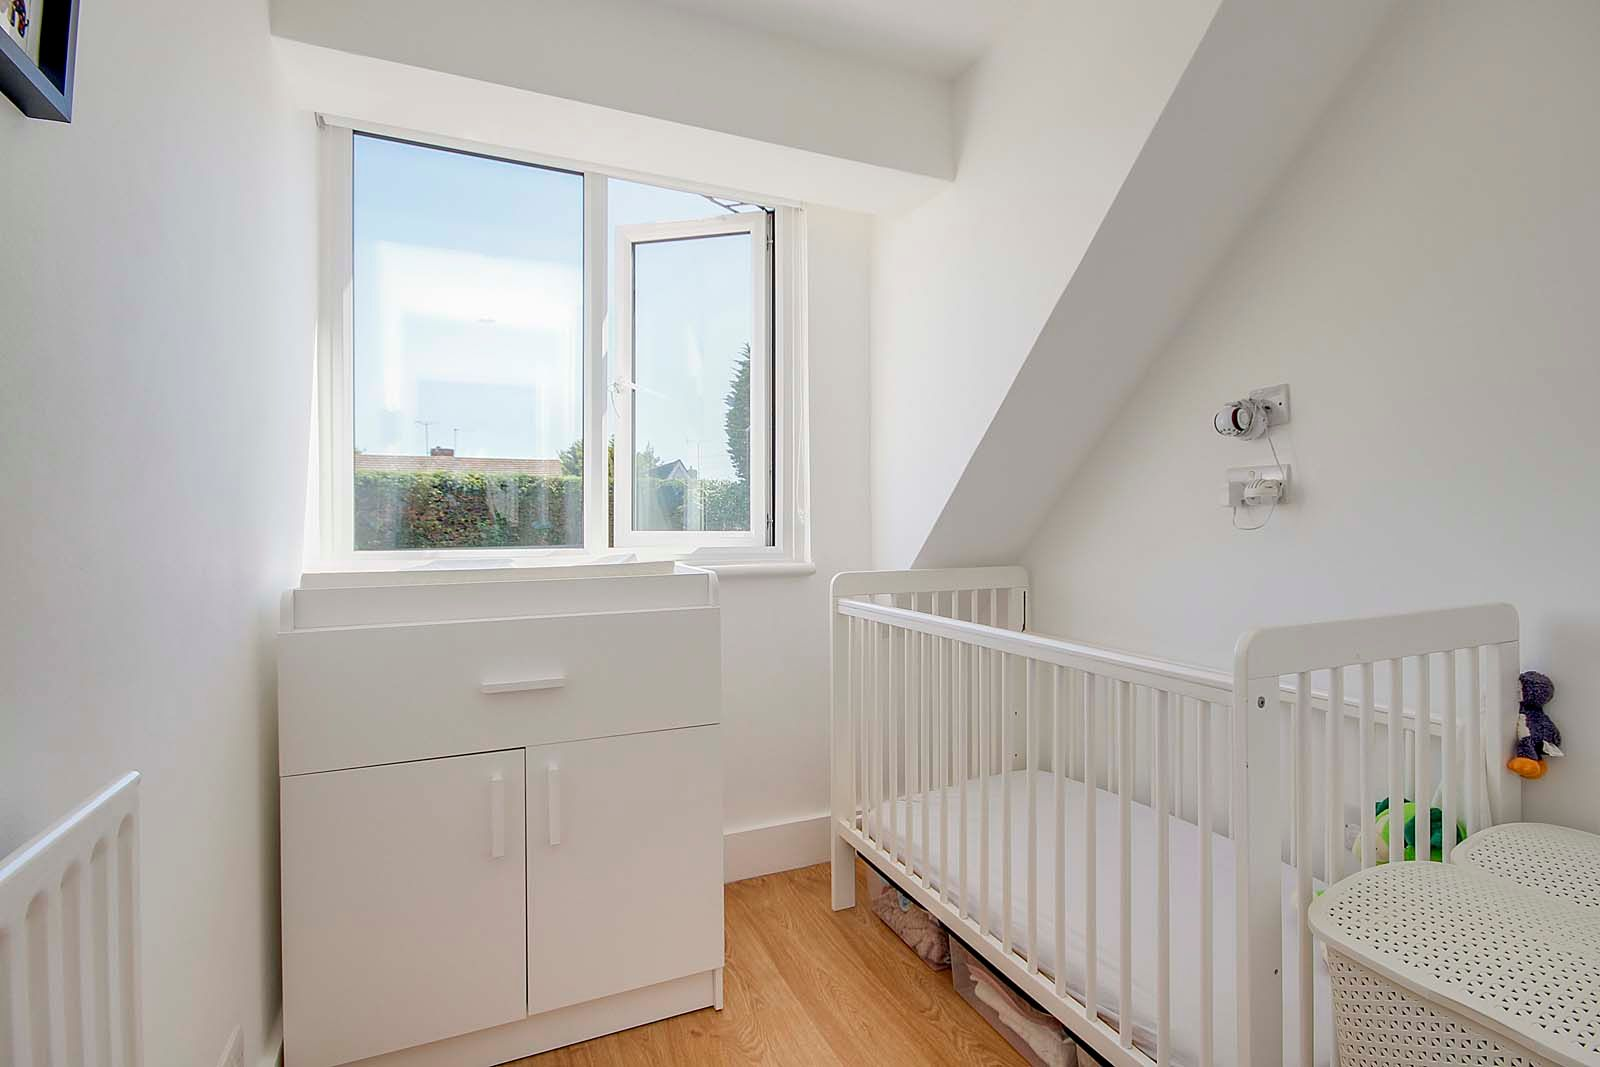 3 bed house for sale in Old Worthing Road  - Property Image 13